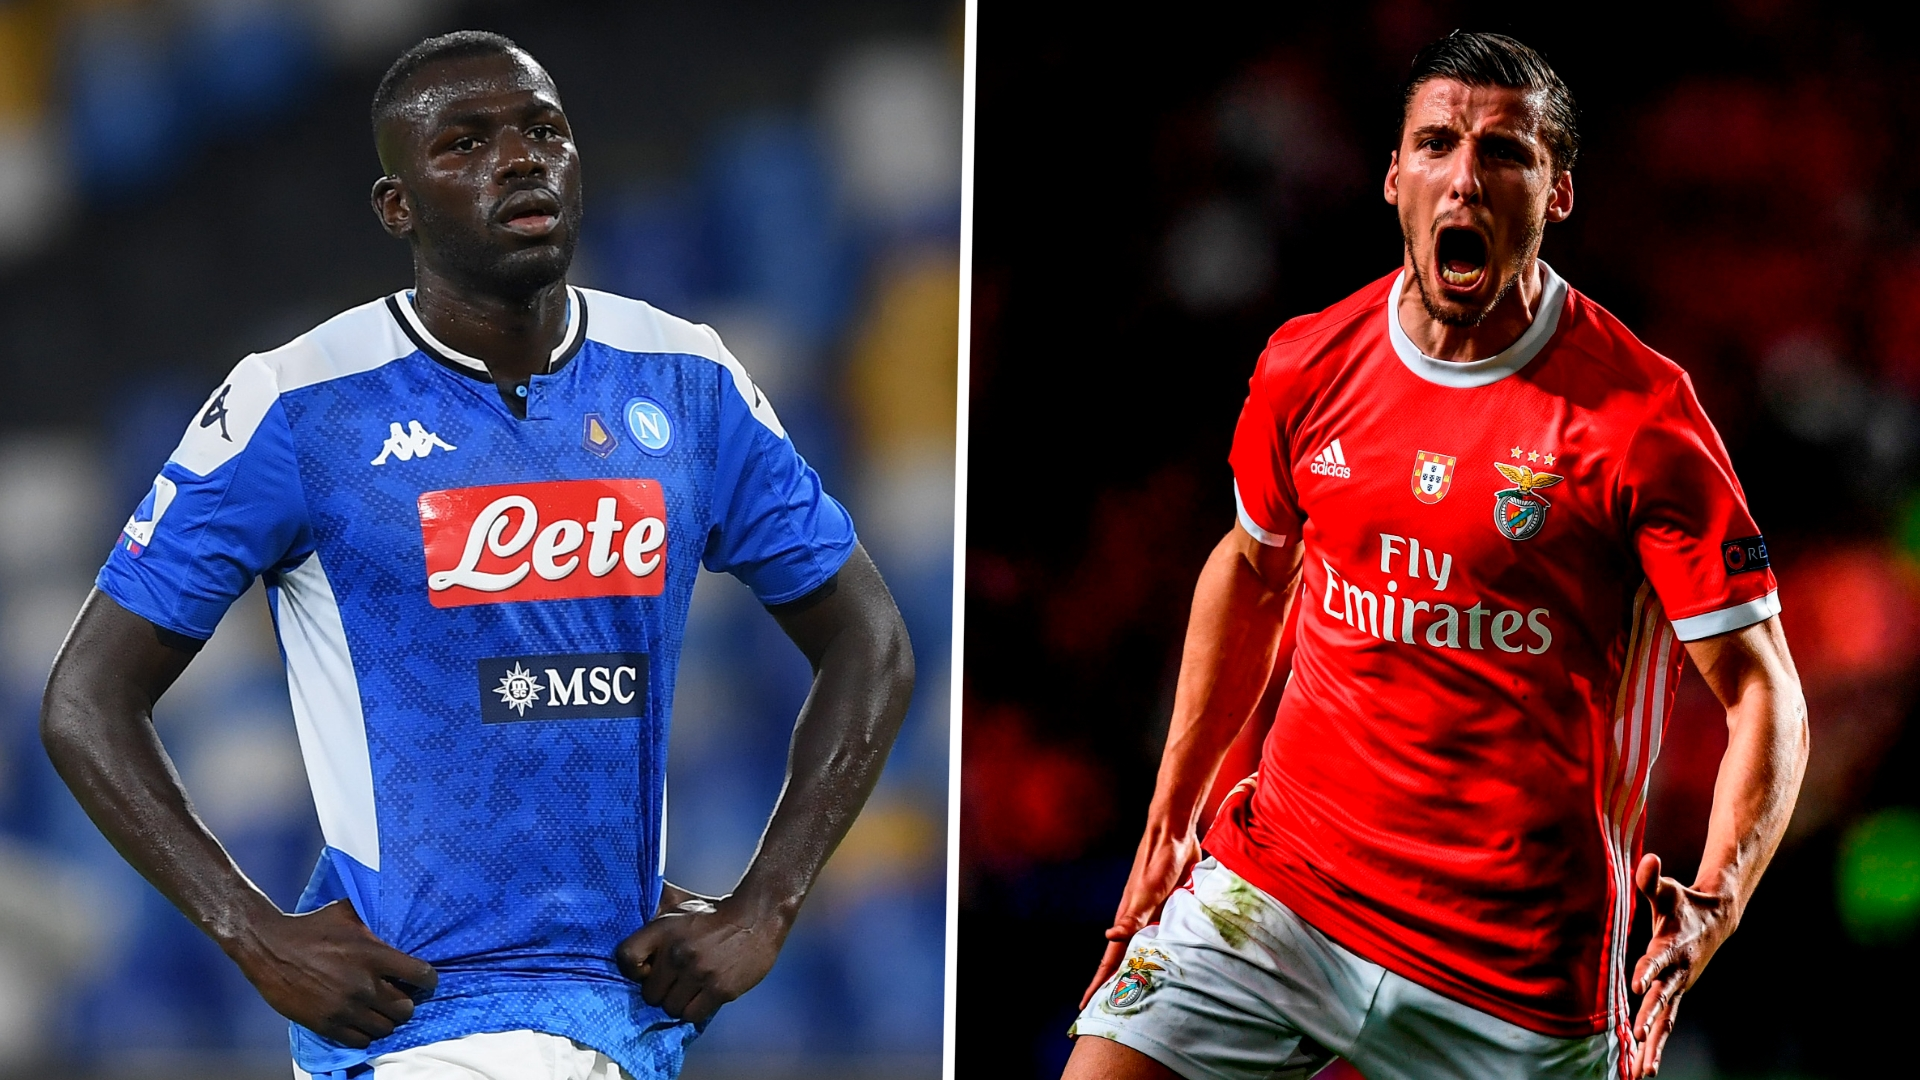 'Ask Koulibaly a question' - Were Manchester City expecting to sign Napoli defender instead of Dias?